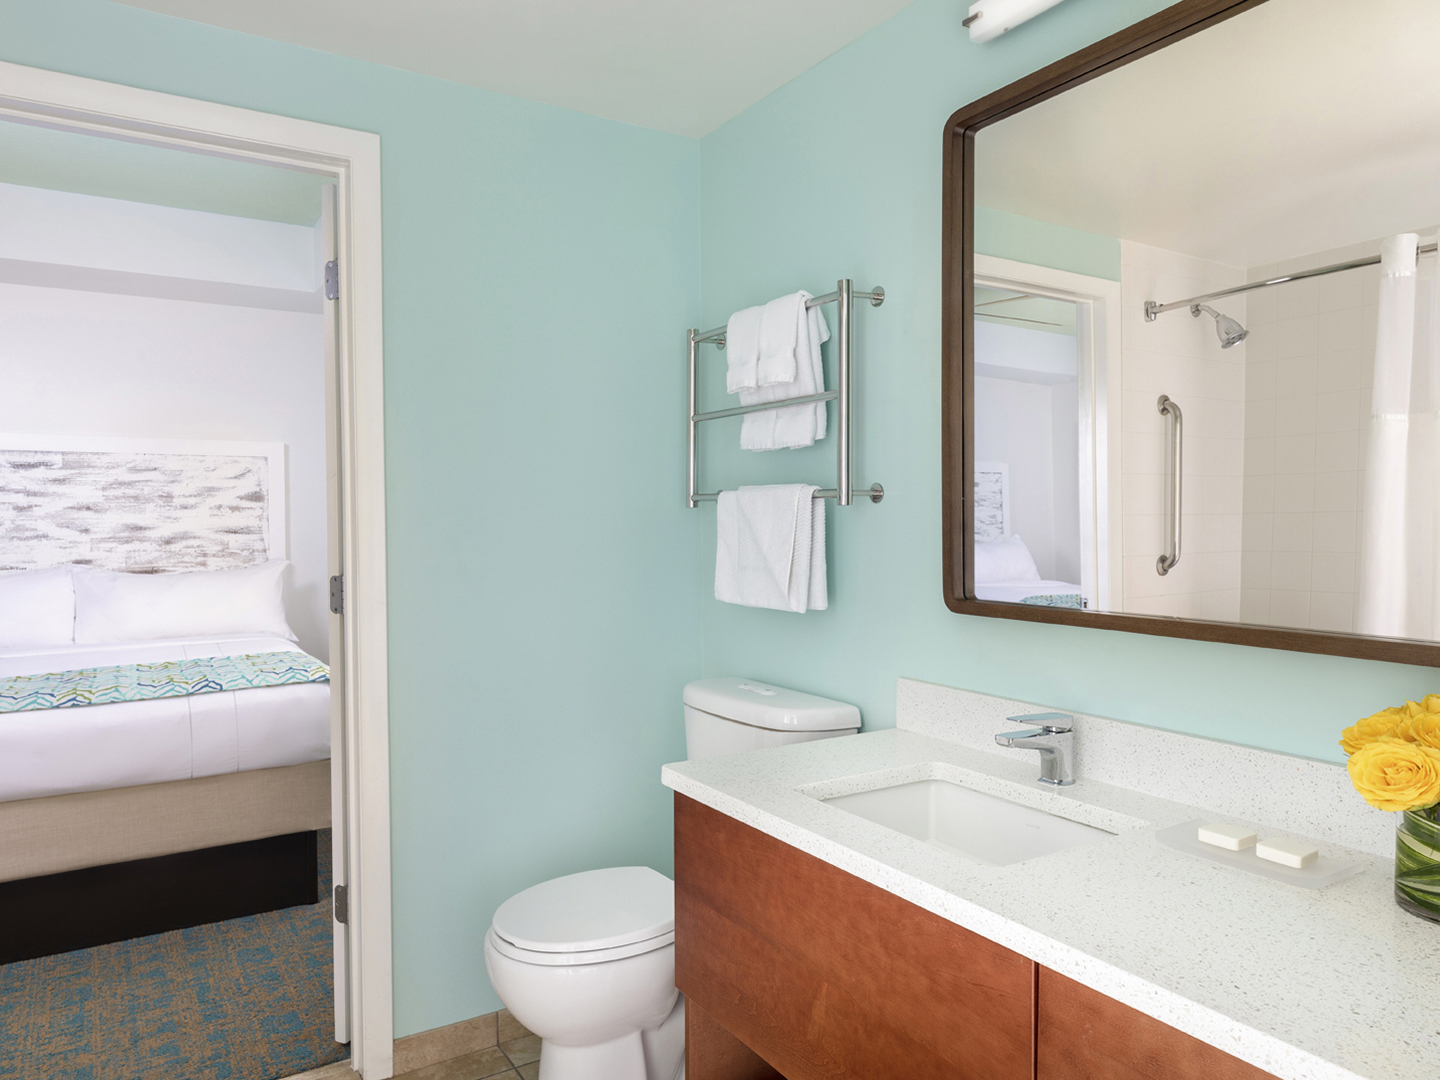 Marriott's Harbour Lake Guest Bathroom. Marriott's Harbour Lake is located in Orlando, Florida United States.